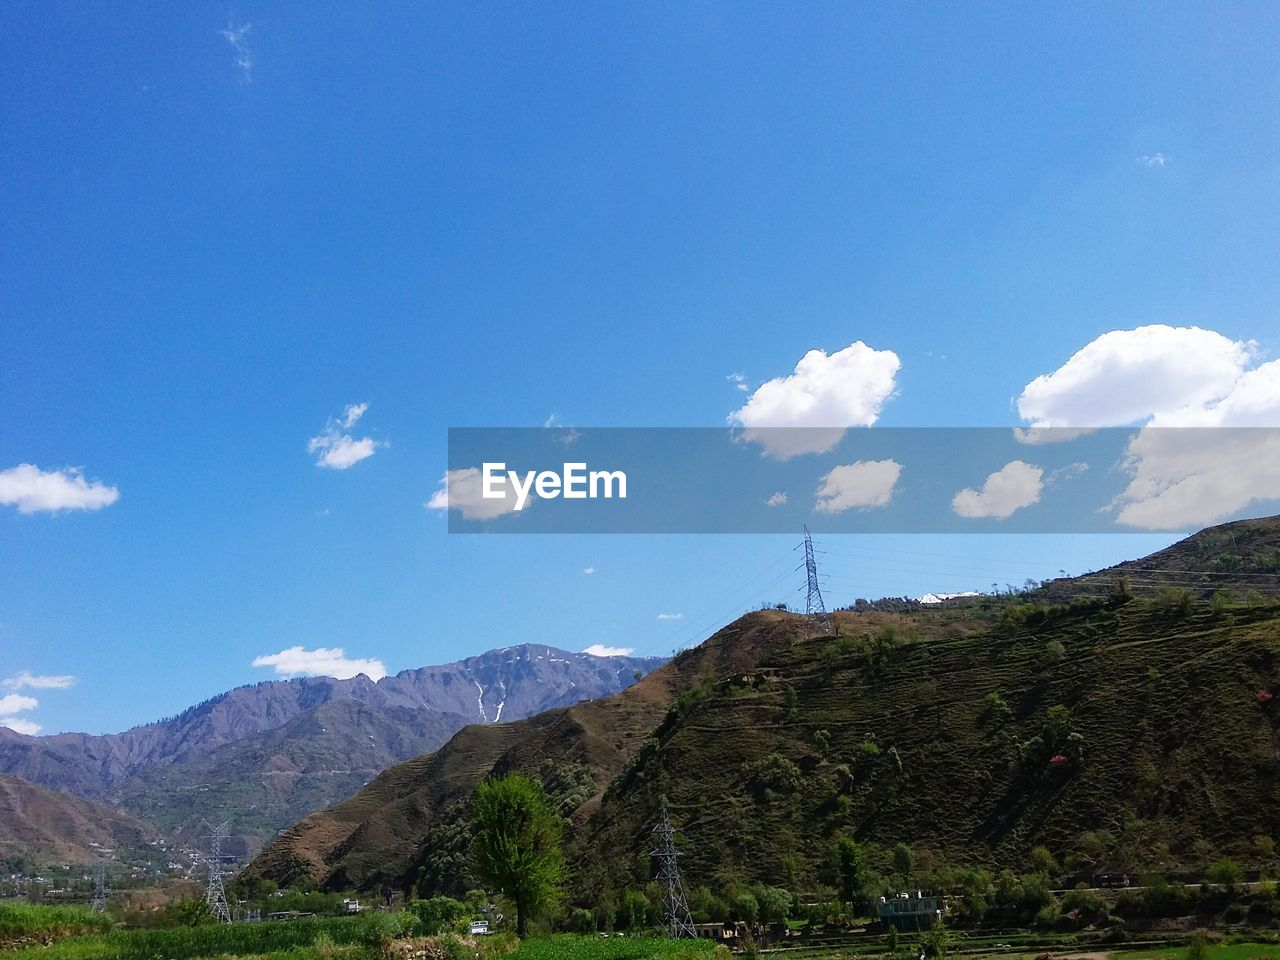 mountain, nature, sky, beauty in nature, scenery, landscape, peak, scenics, day, outdoors, no people